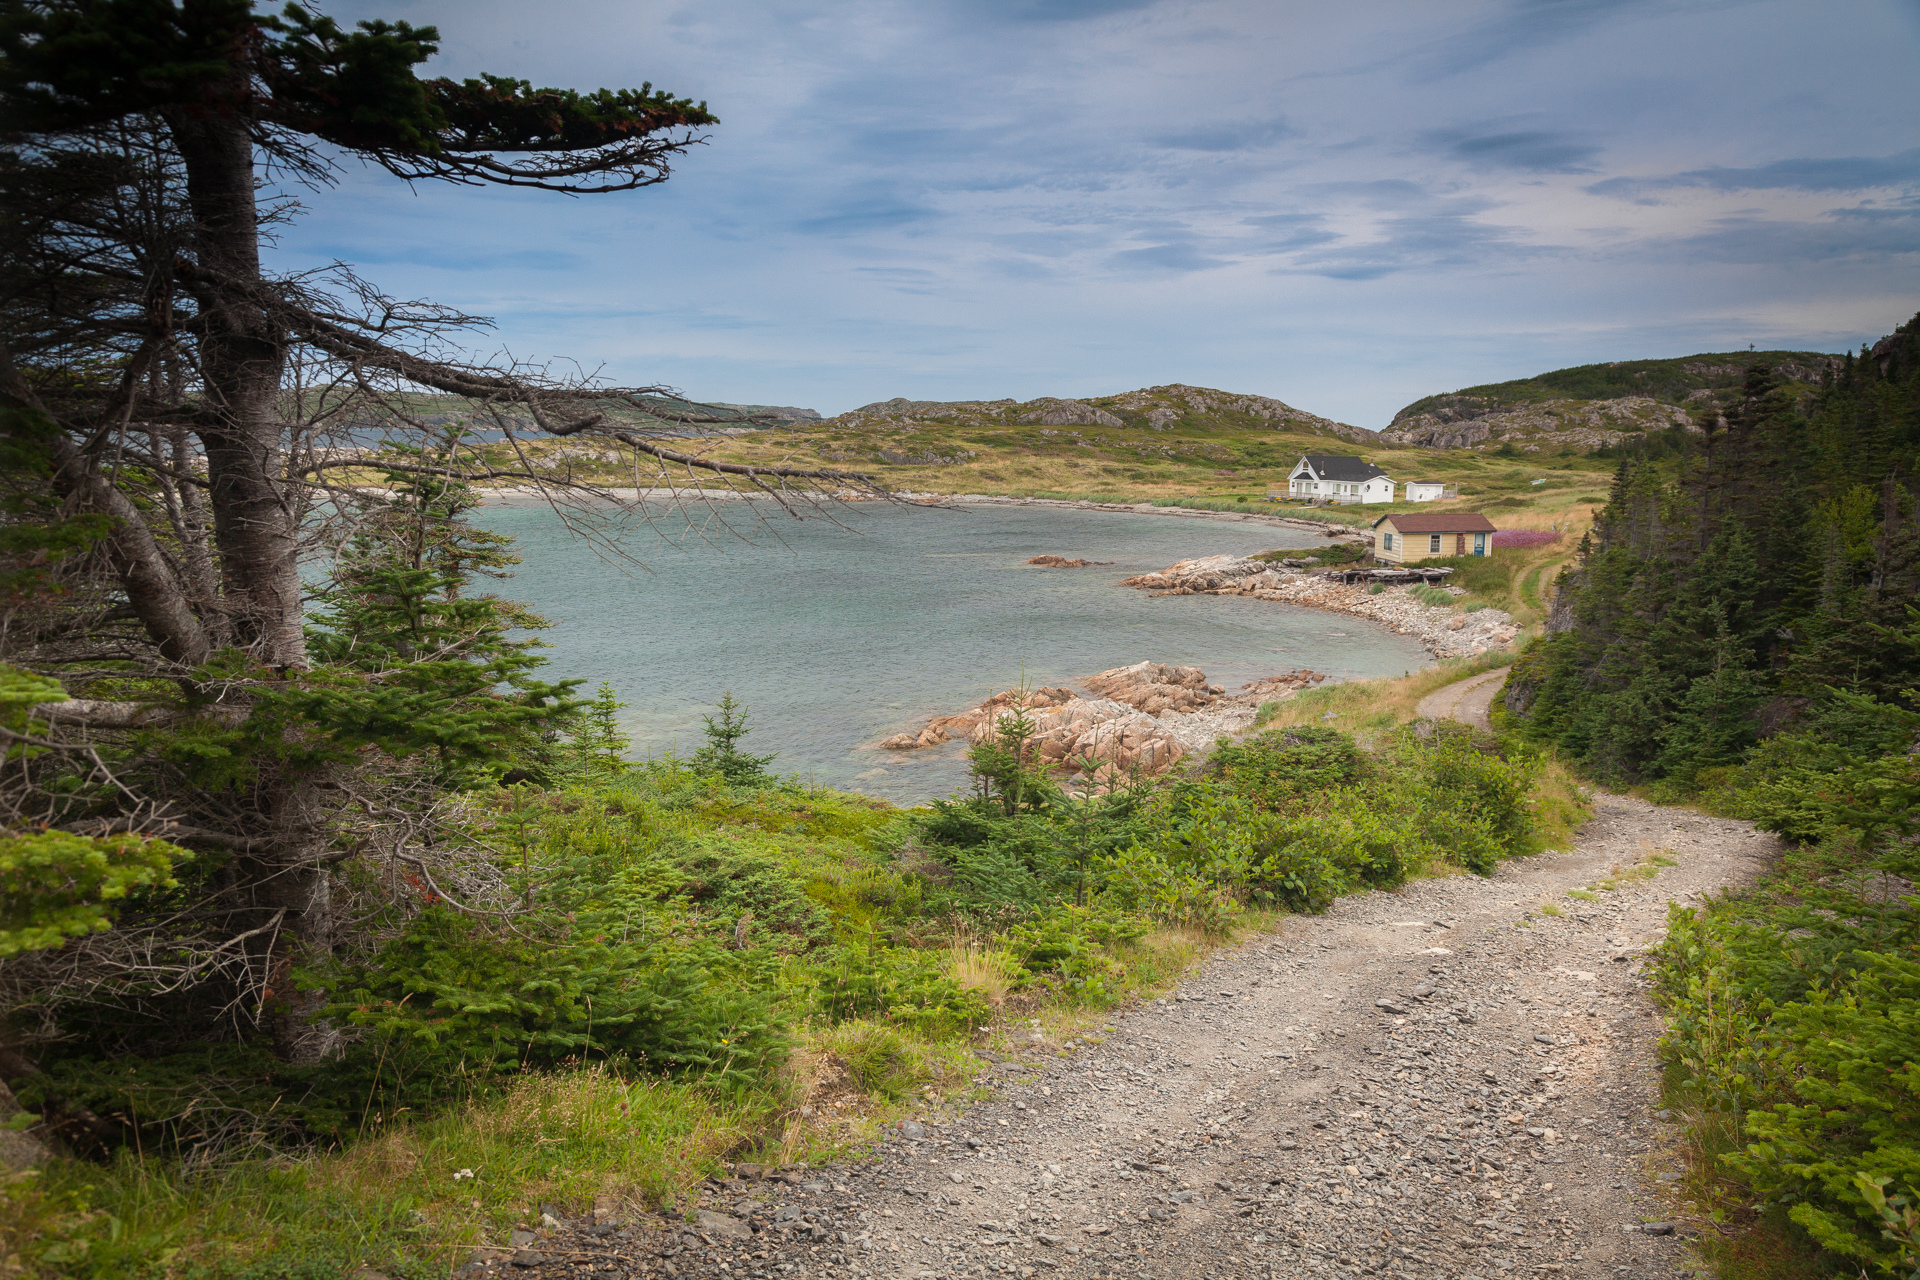 Landscapes - Newfoundland - My Way Home